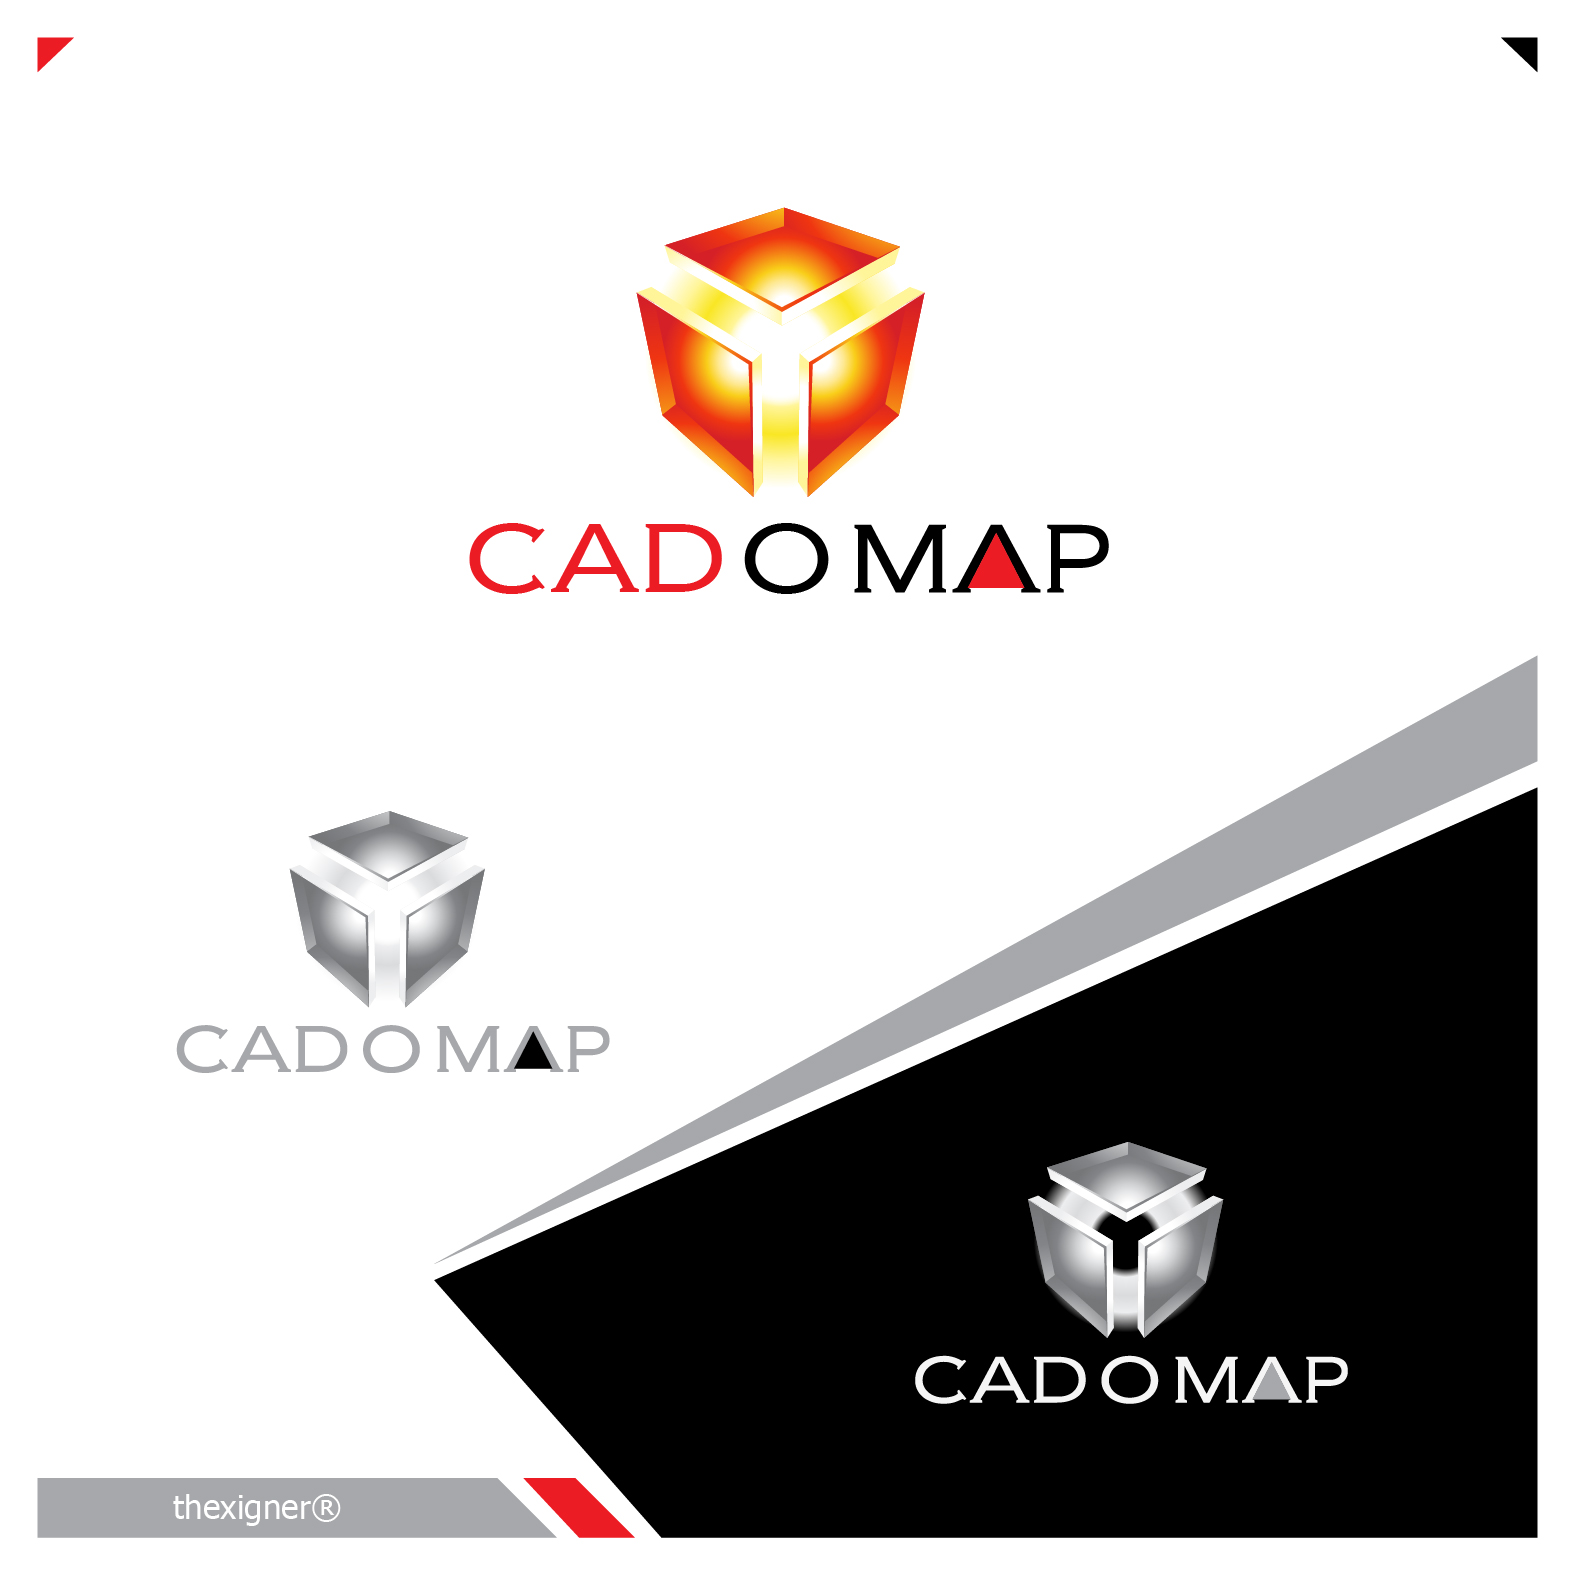 Logo Design by lagalag - Entry No. 156 in the Logo Design Contest Captivating Logo Design for CadOMap software product.